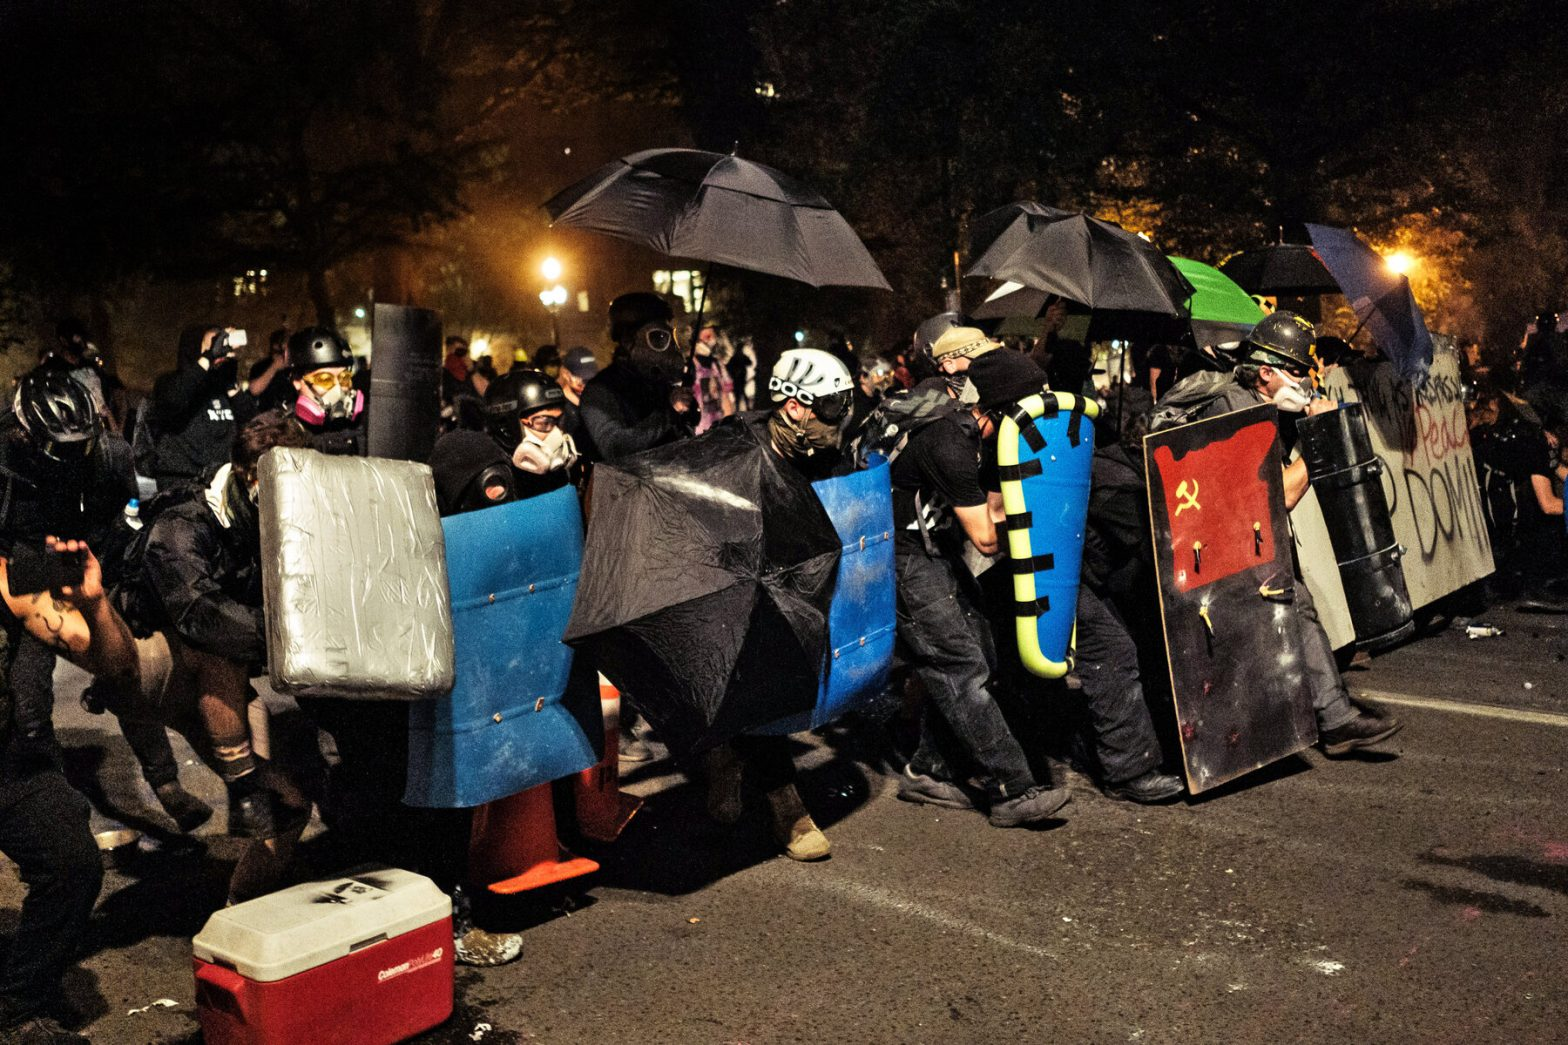 Wall of shields and umbrellas at a black bloc action in Portland